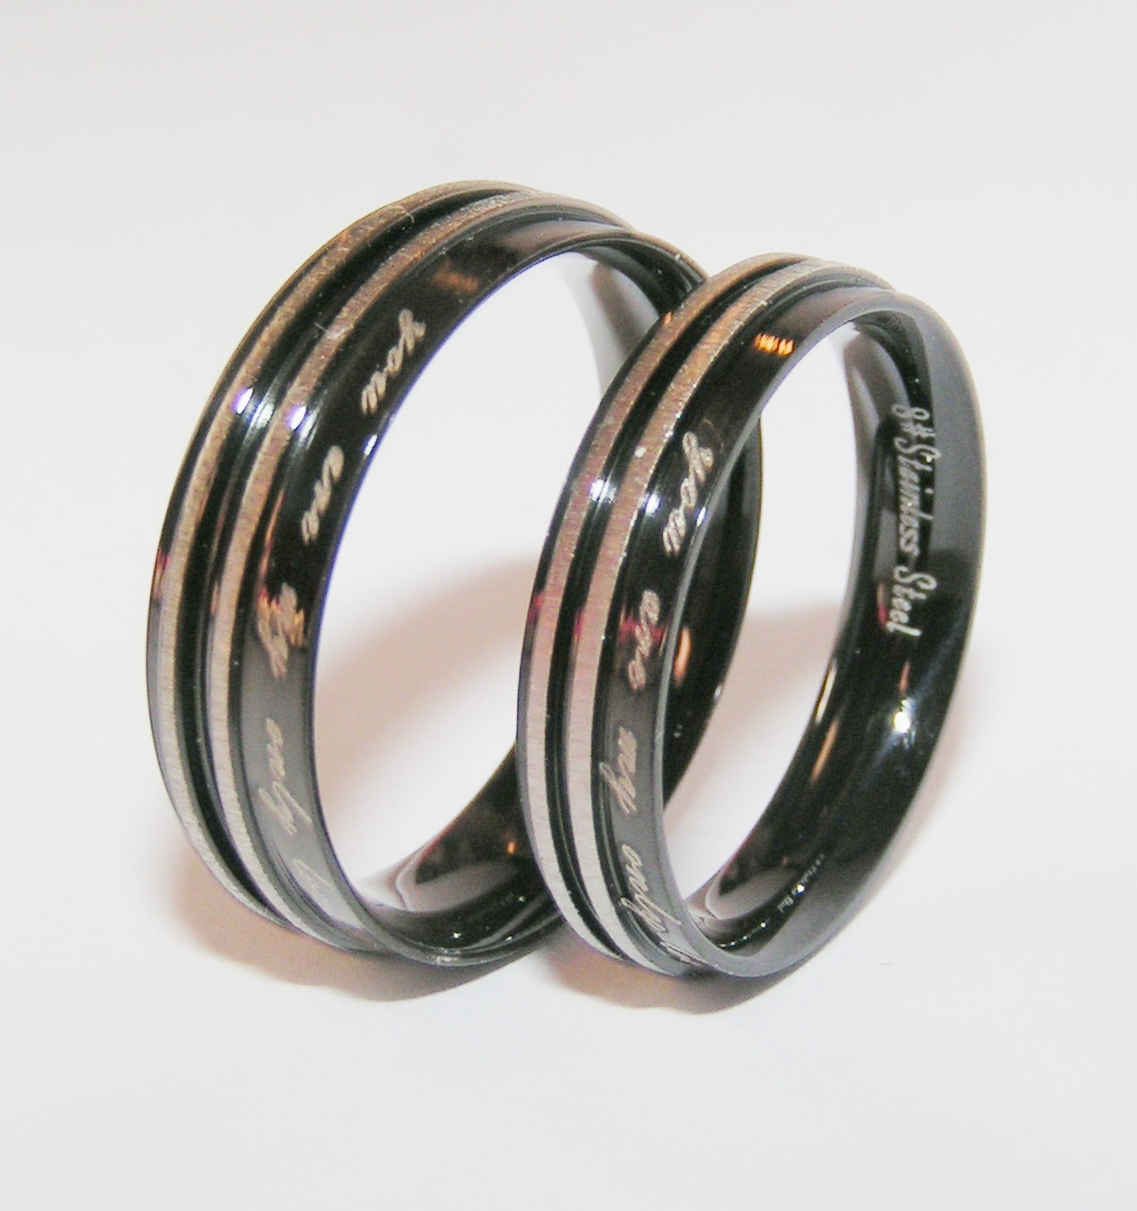 2pc Stainless Steel Matching Couples Ring Set Black/Silver Free Shipping